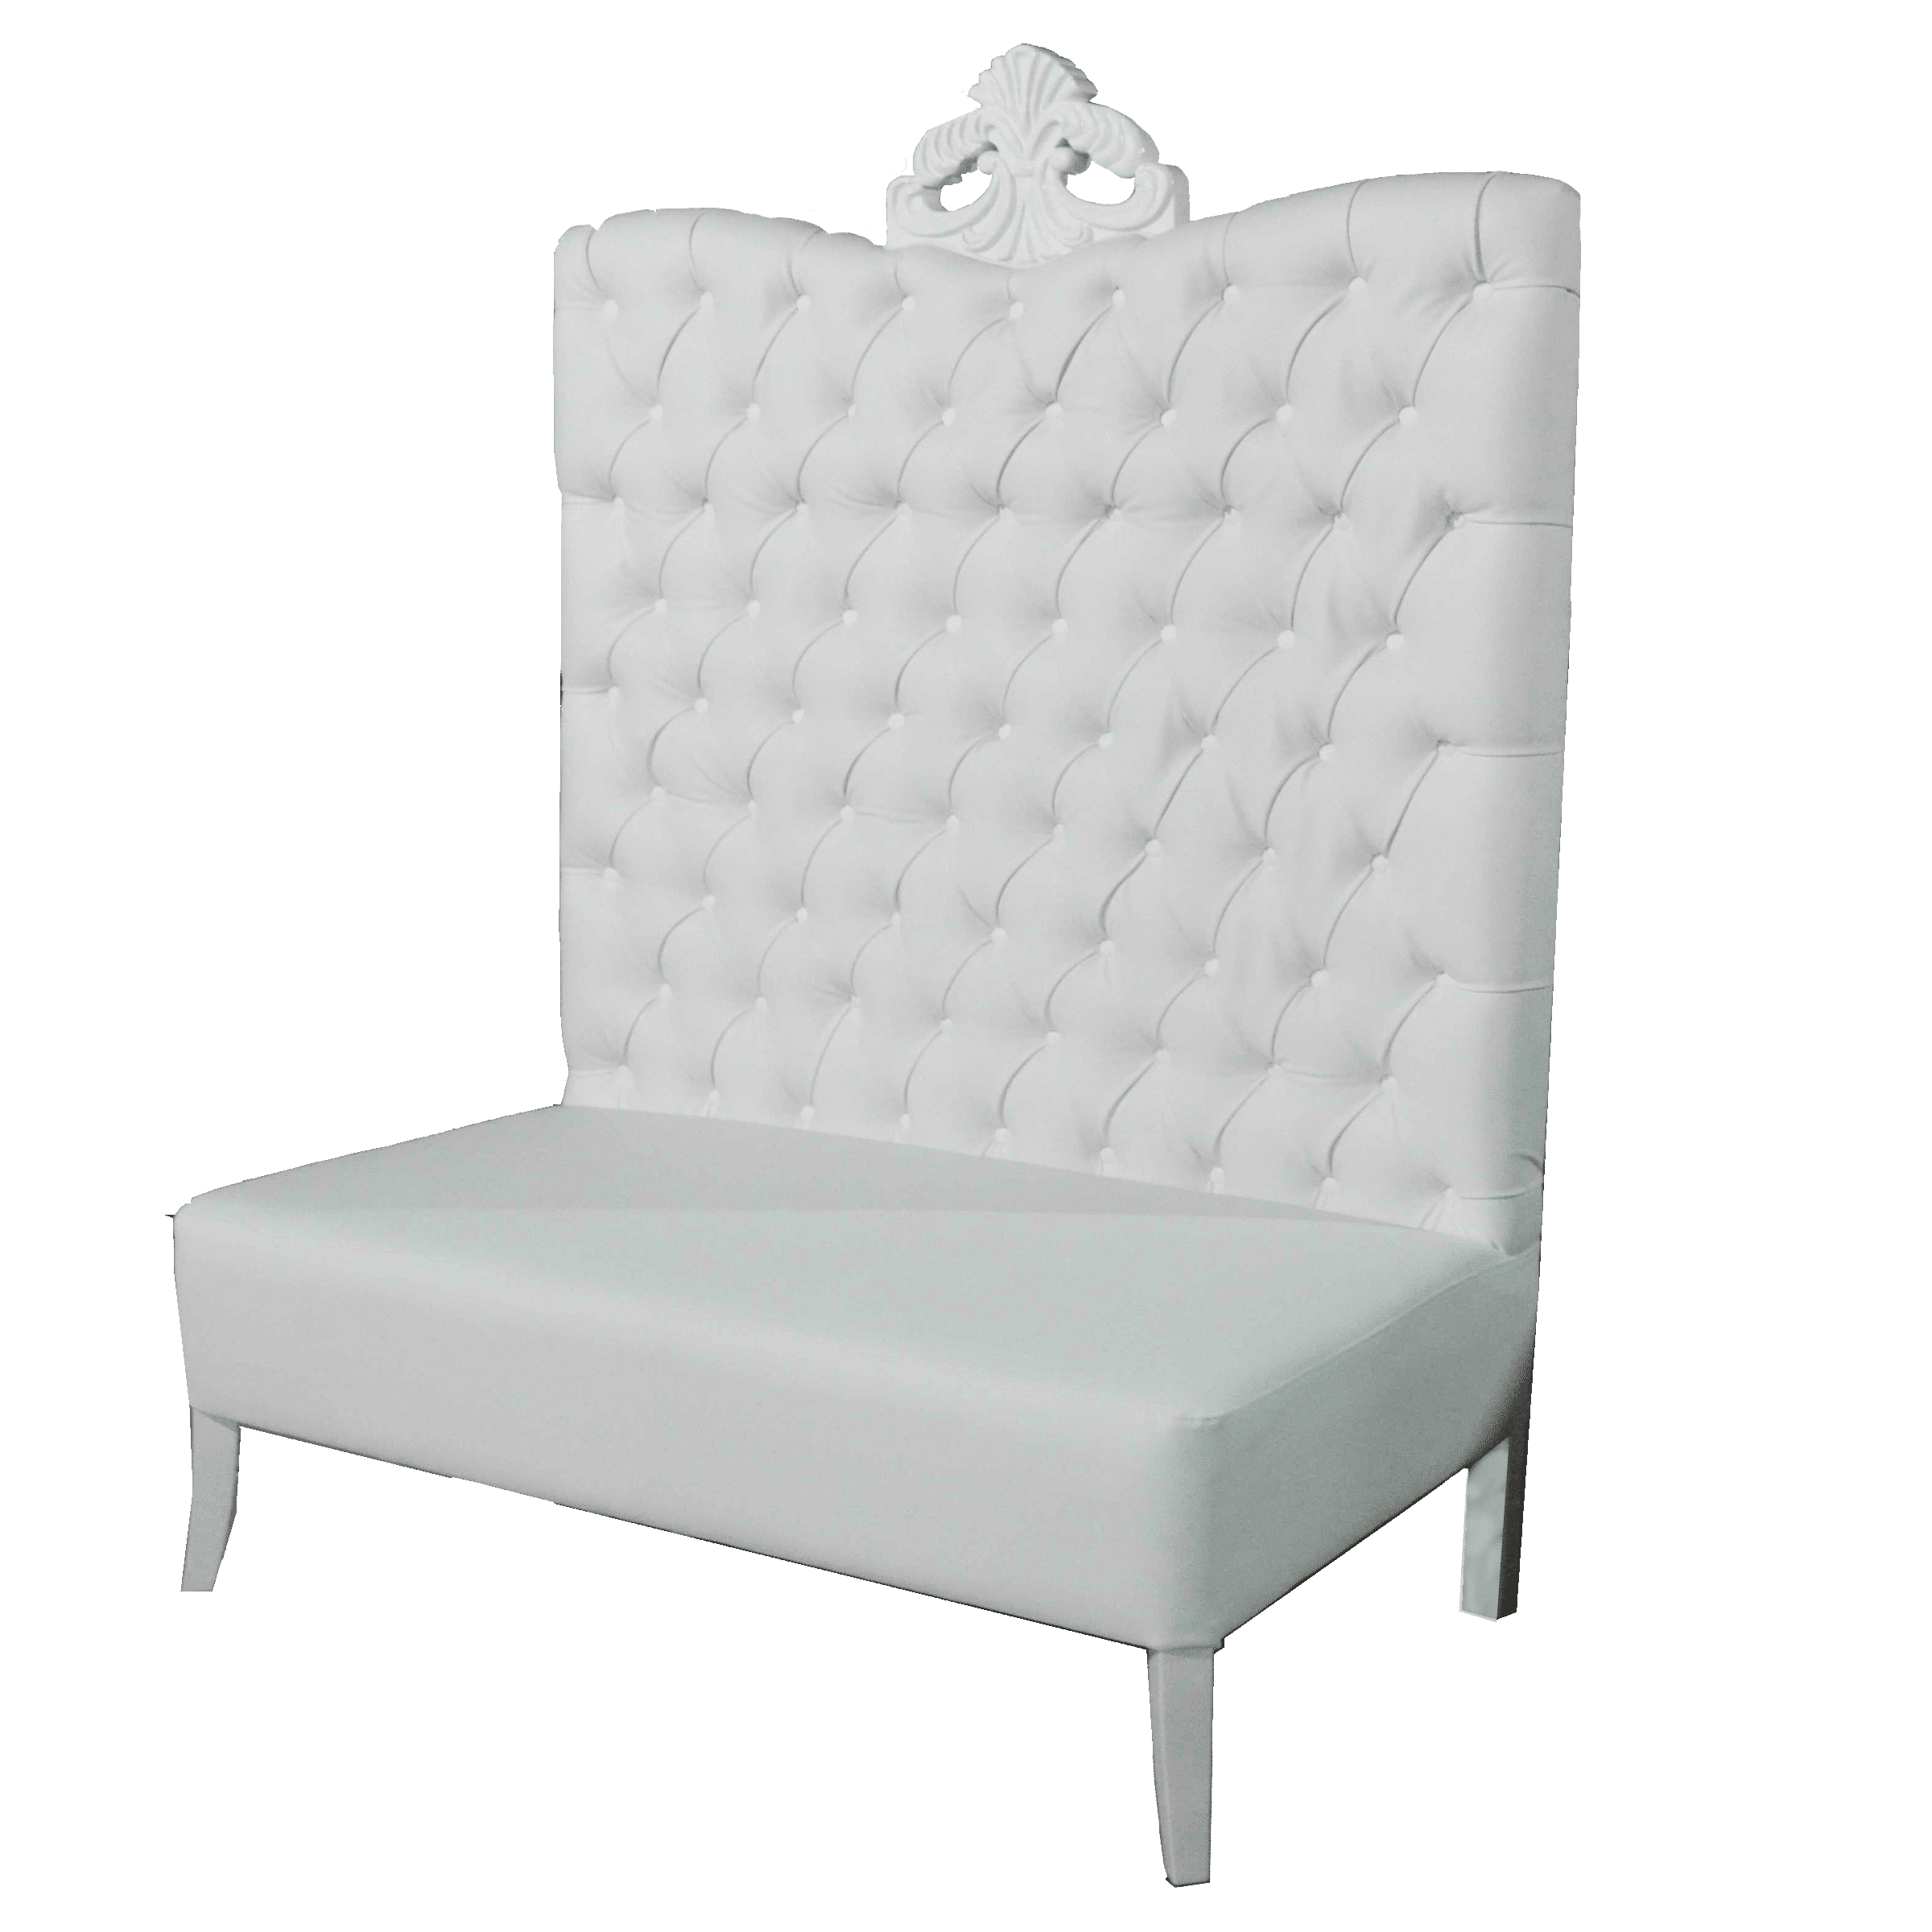 Sensational White Luxe Line High Back Sofa Pabps2019 Chair Design Images Pabps2019Com